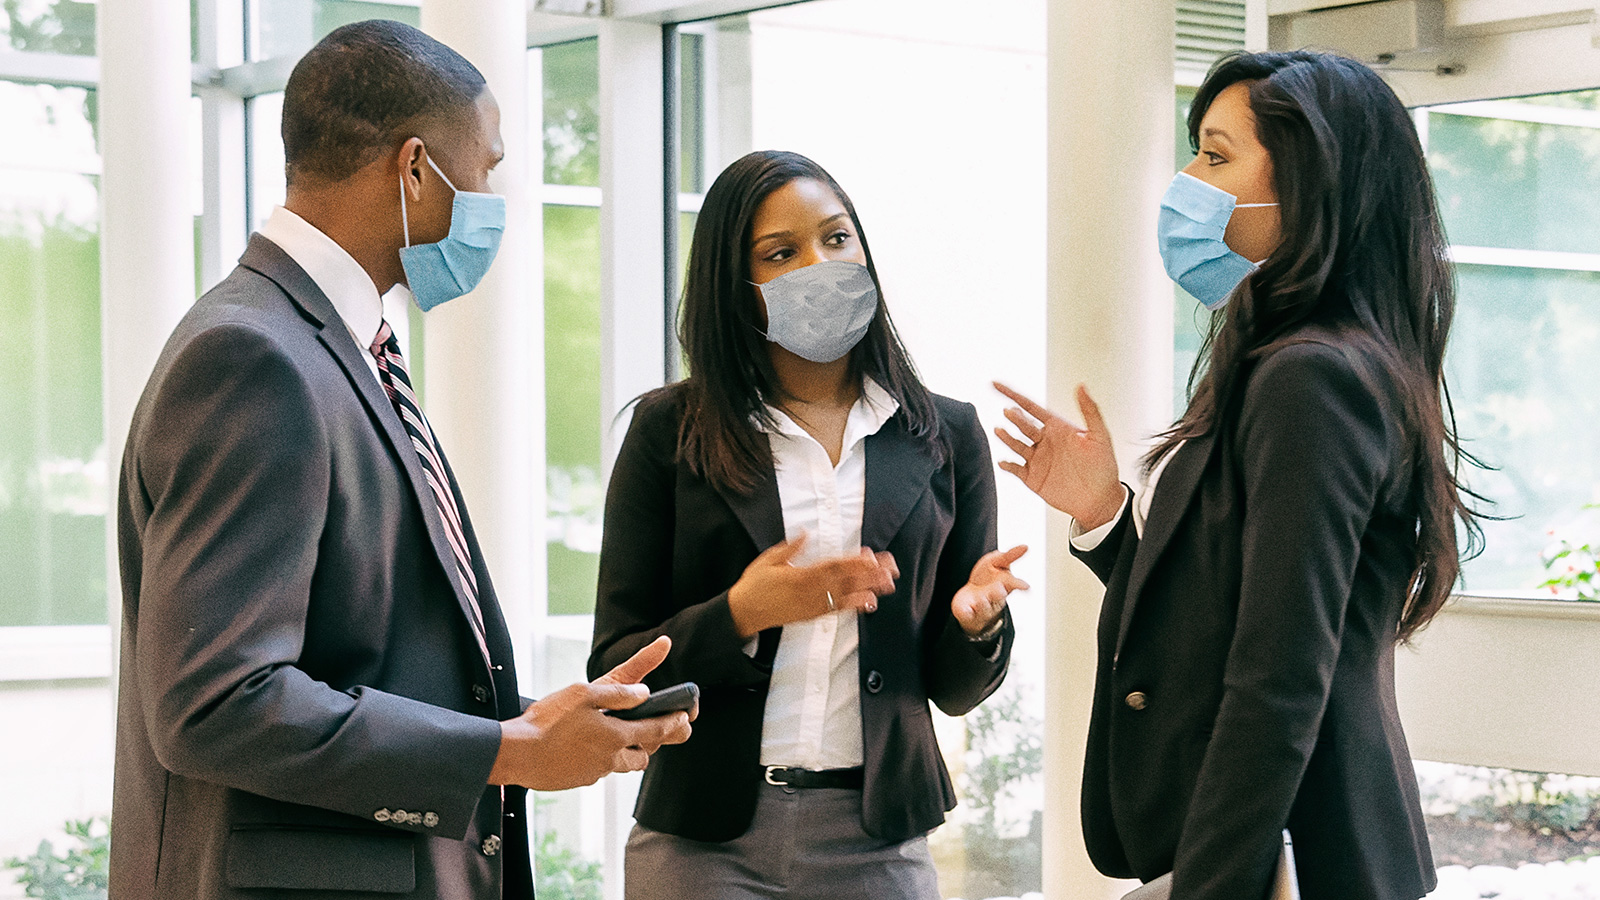 Business people talking while wearing face masks